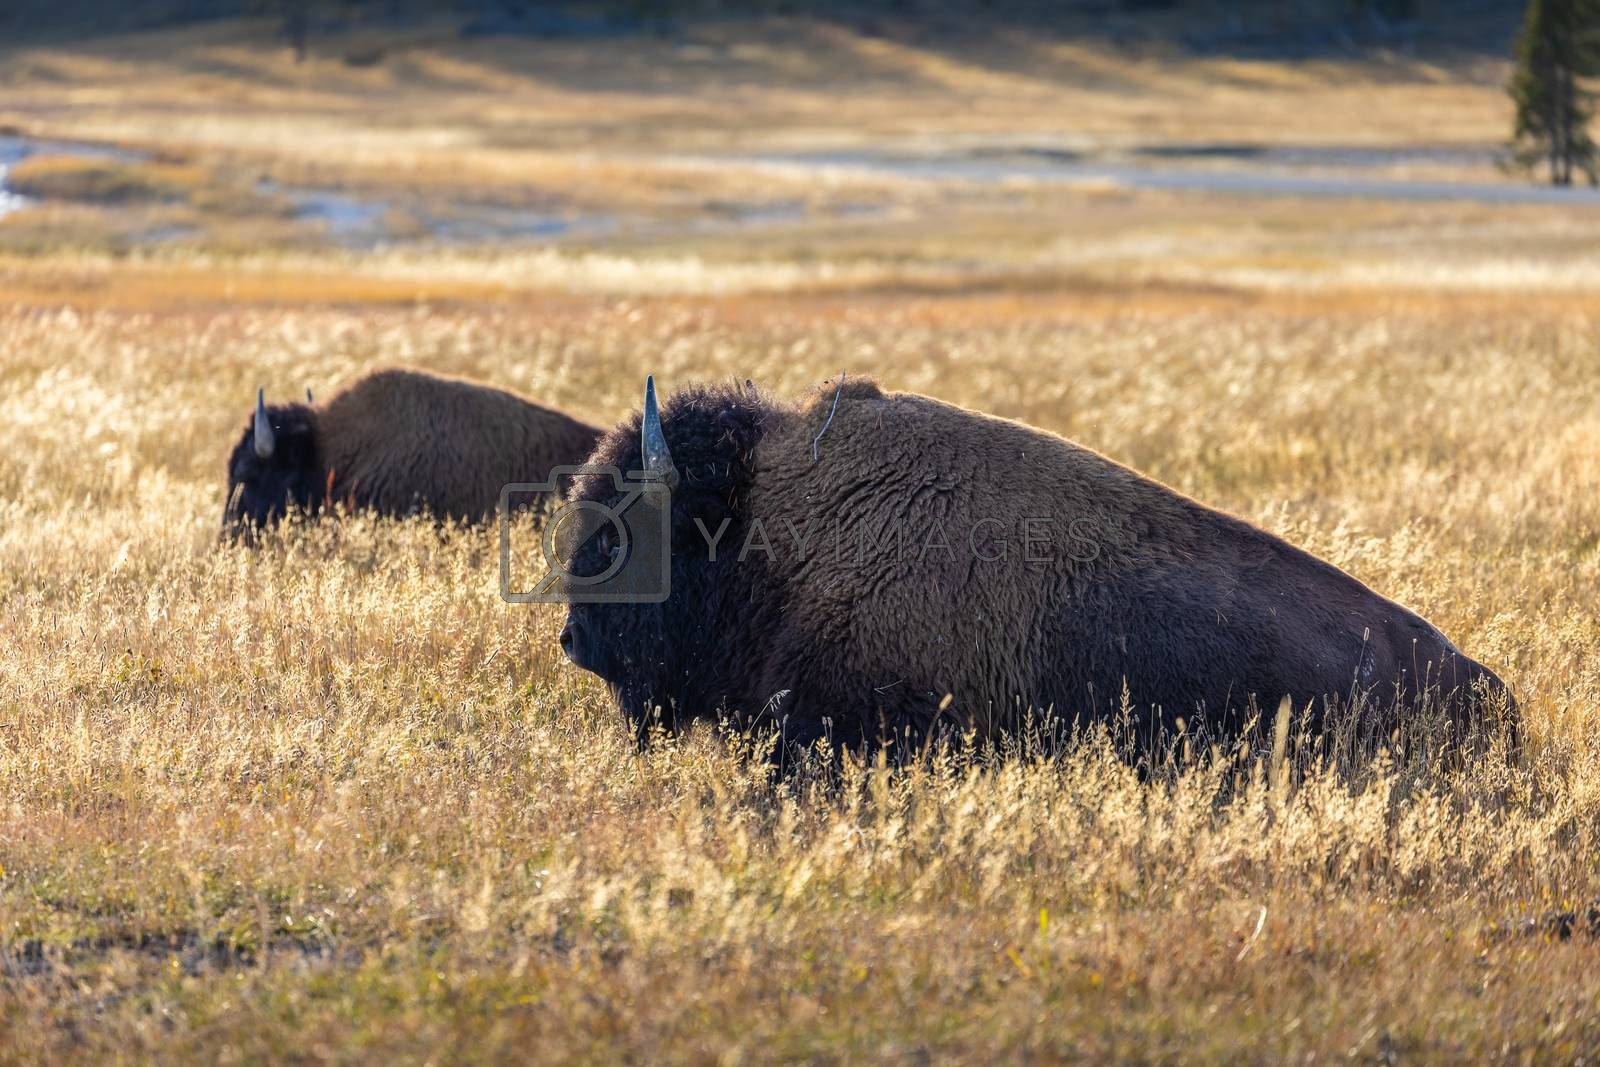 American bisons sitting in grass field of Yellowstone National Park, Wyoming, USA.